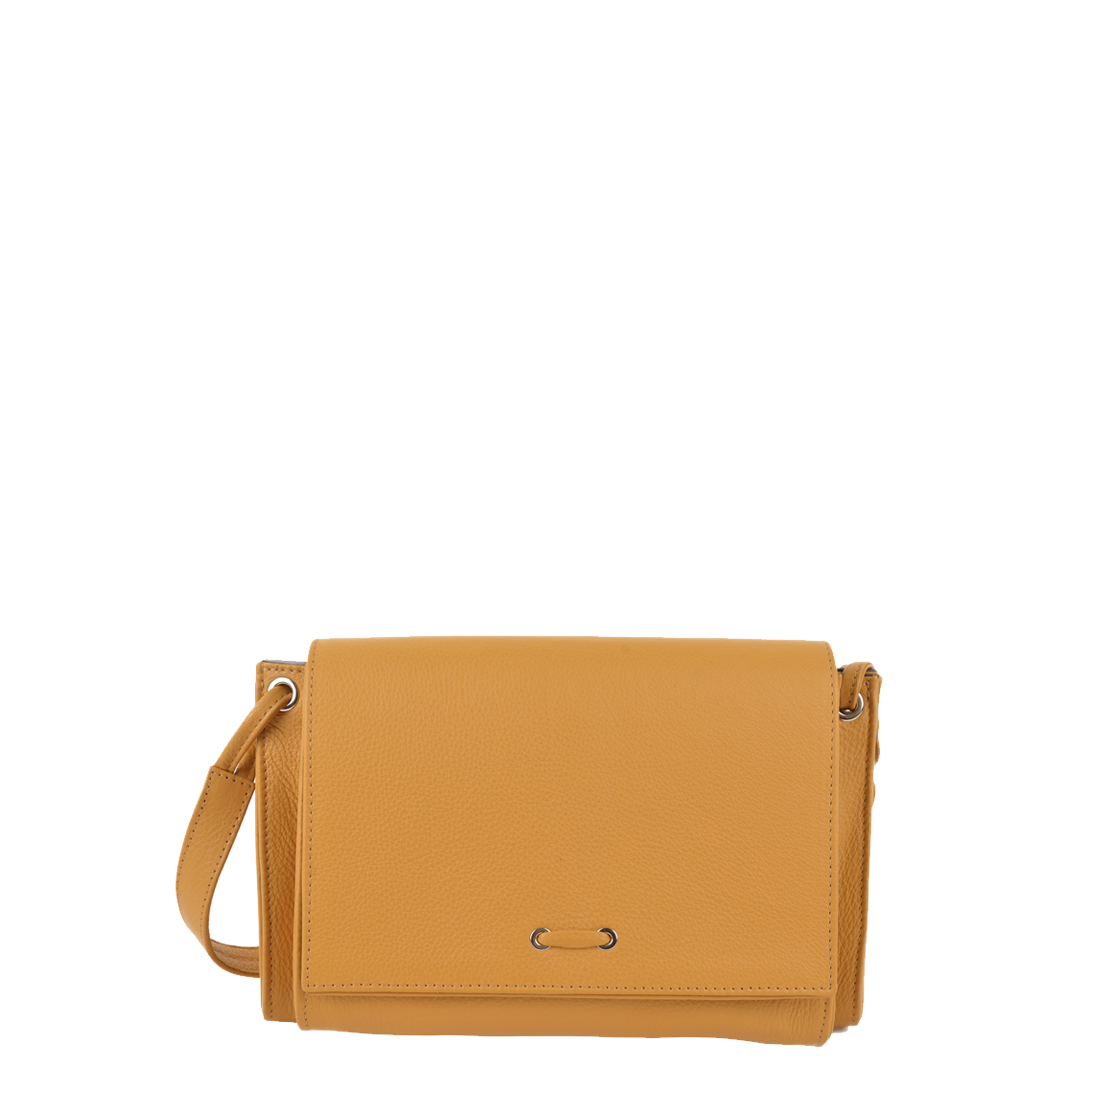 Isobel Yellow Leather Across Body Bag